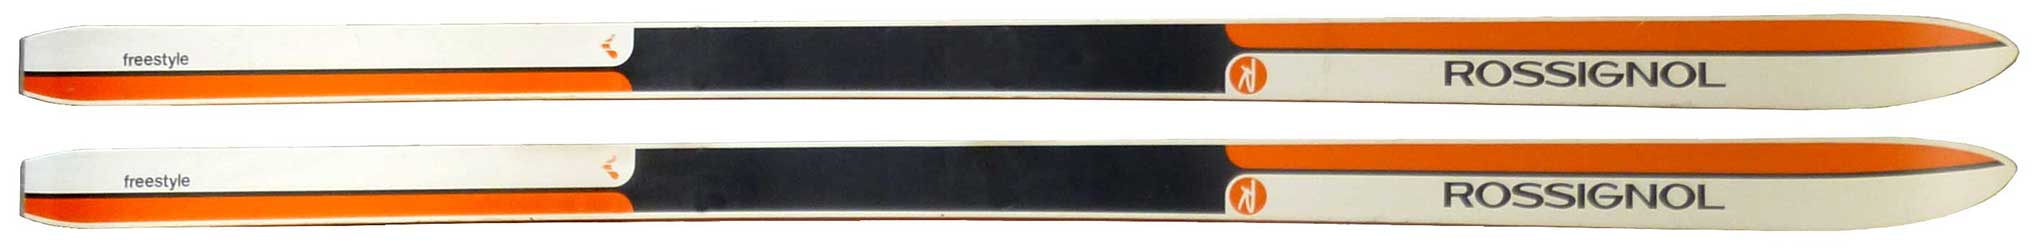 1976 Rossignol Freestyle Skis